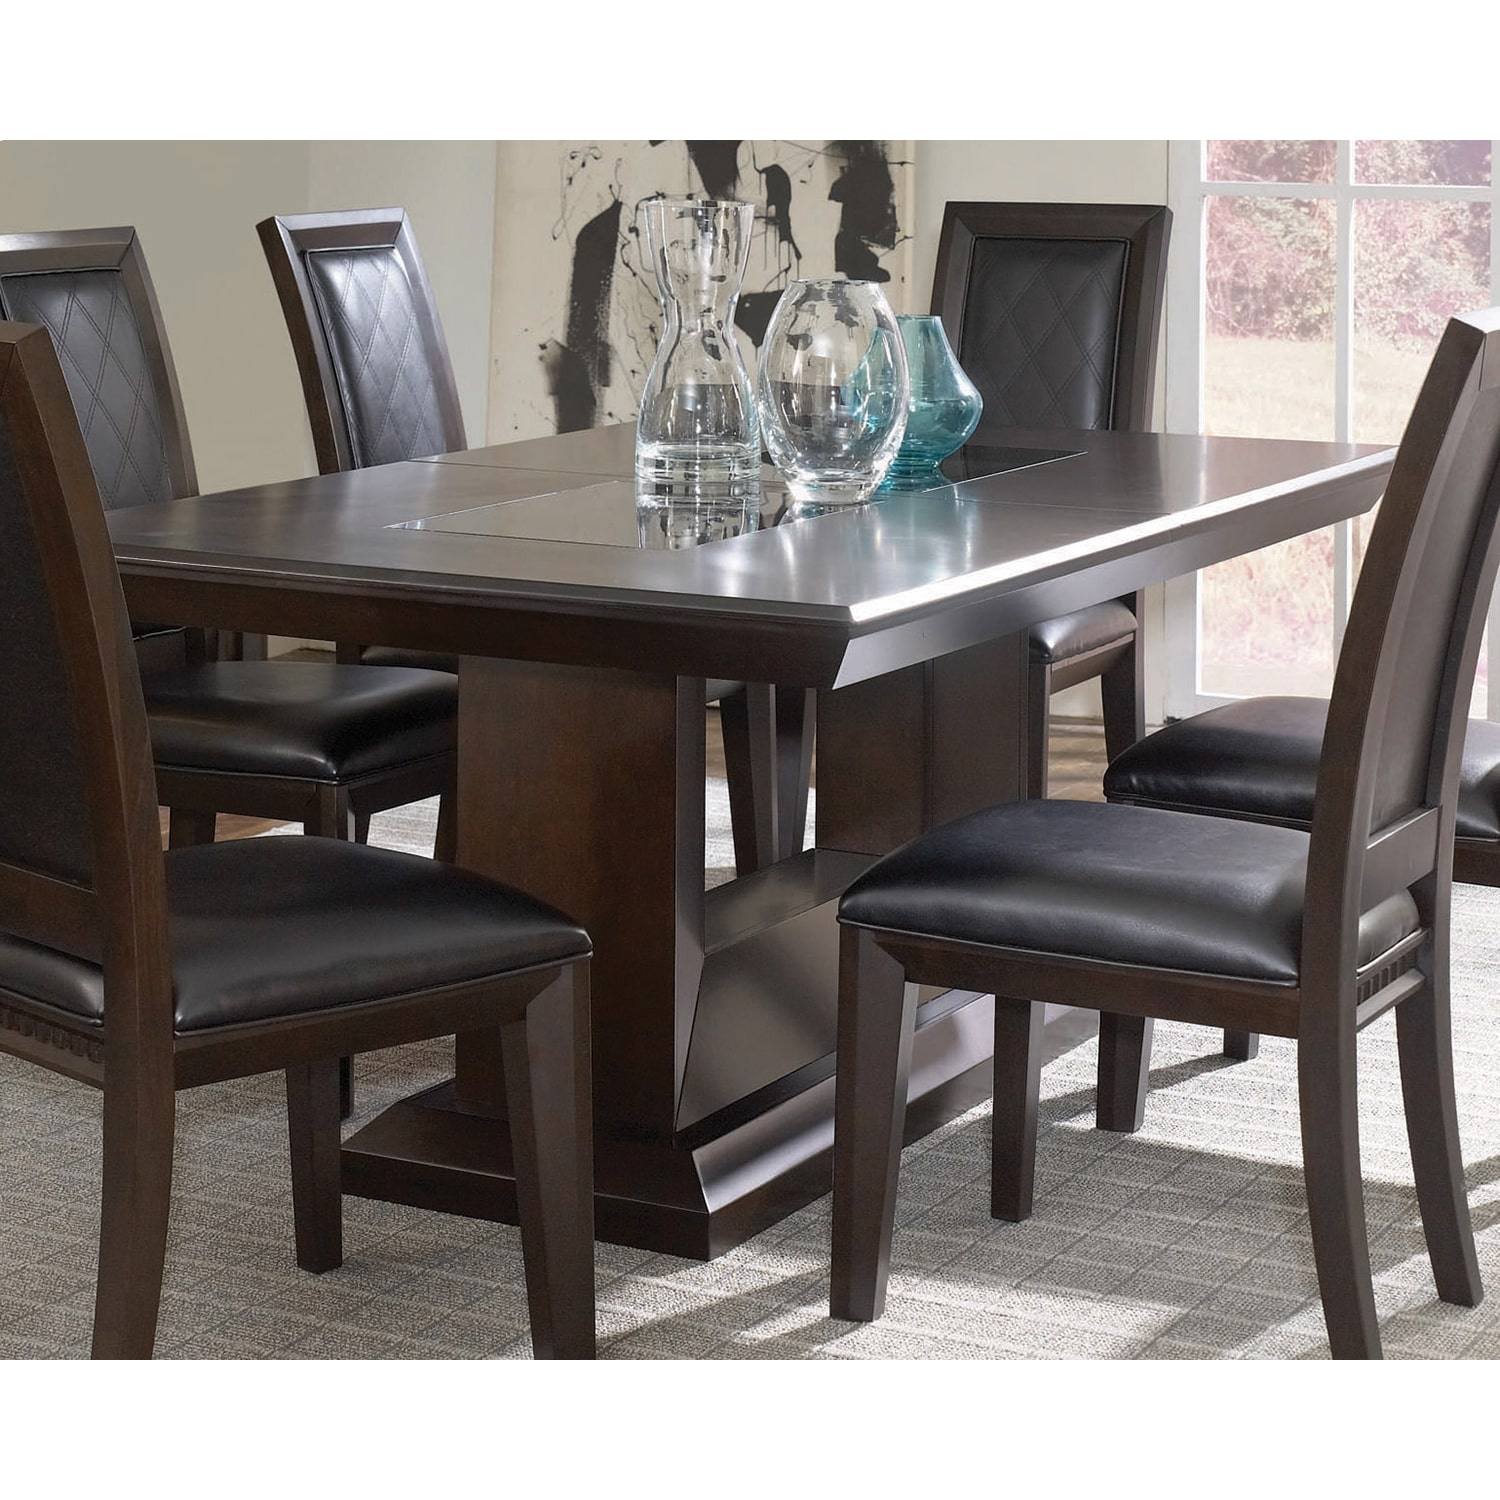 Dining Room Furniture - Brentwood Dining Table